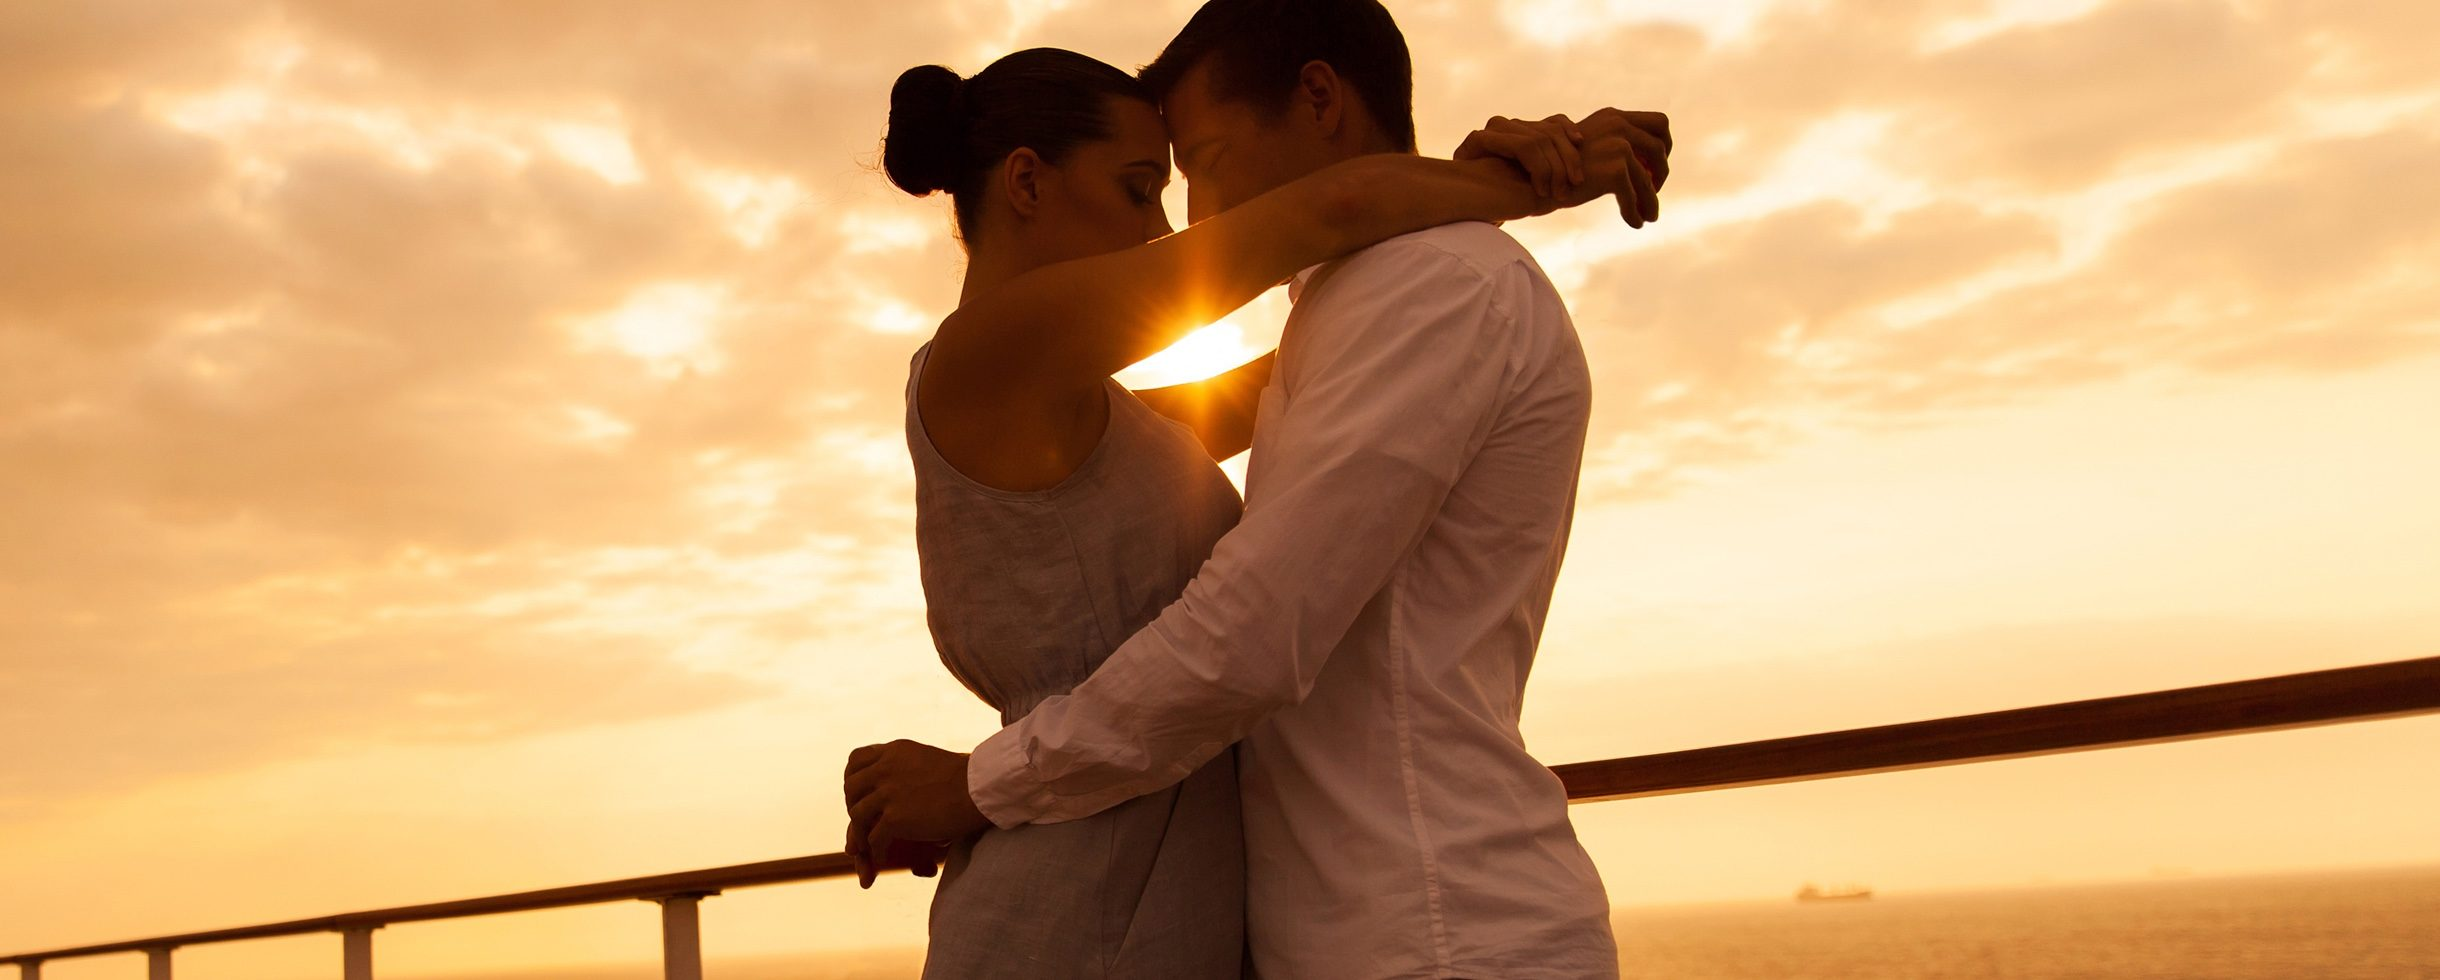 couple in sunset sailing background